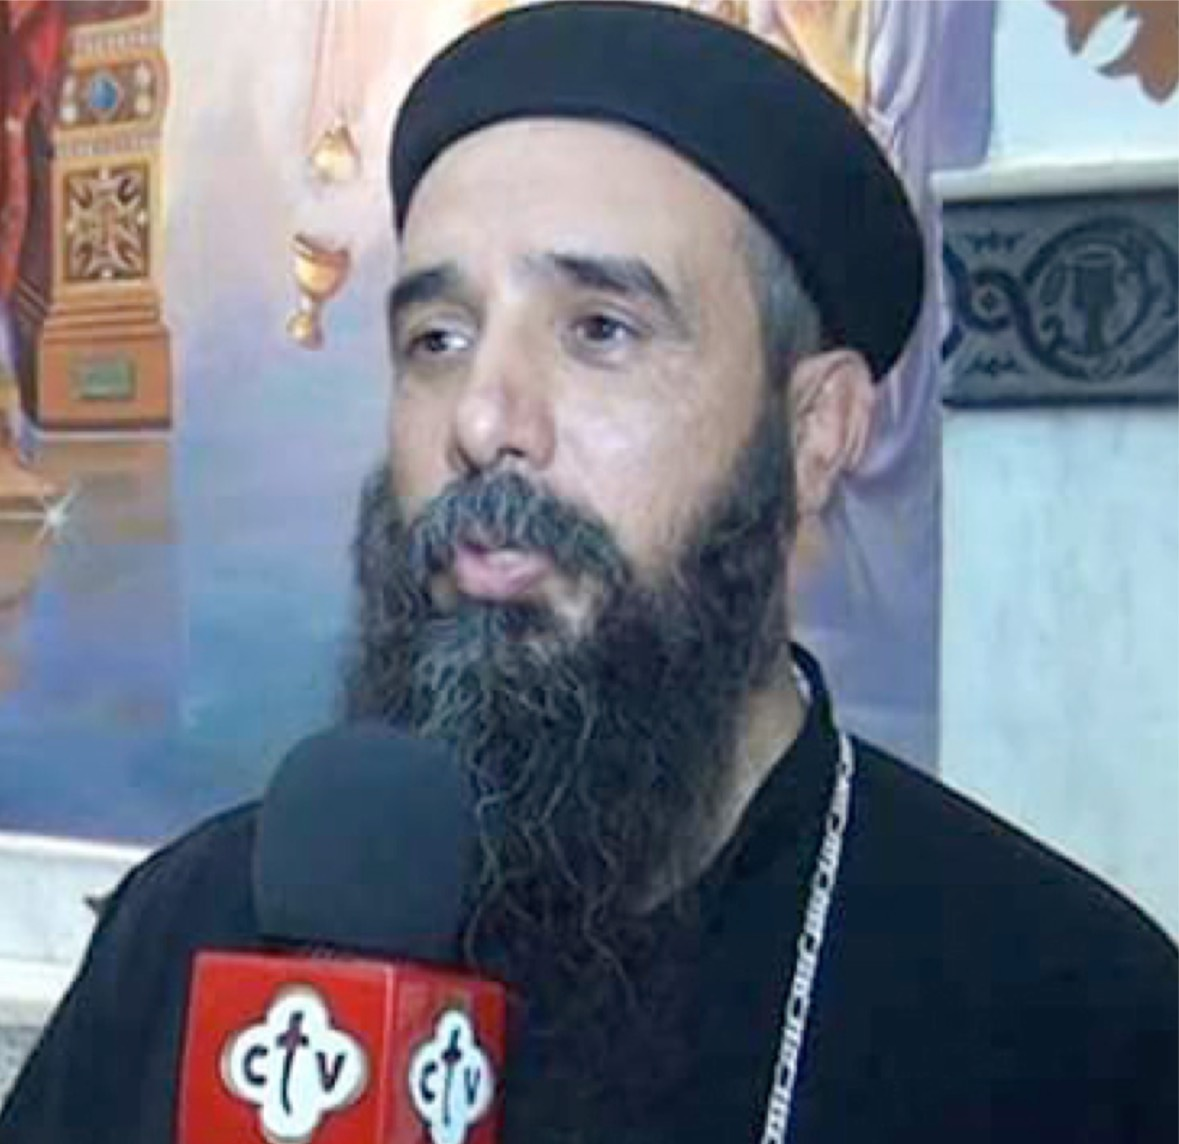 EGYPT: Coptic Orthodox priest murdered in Cairo